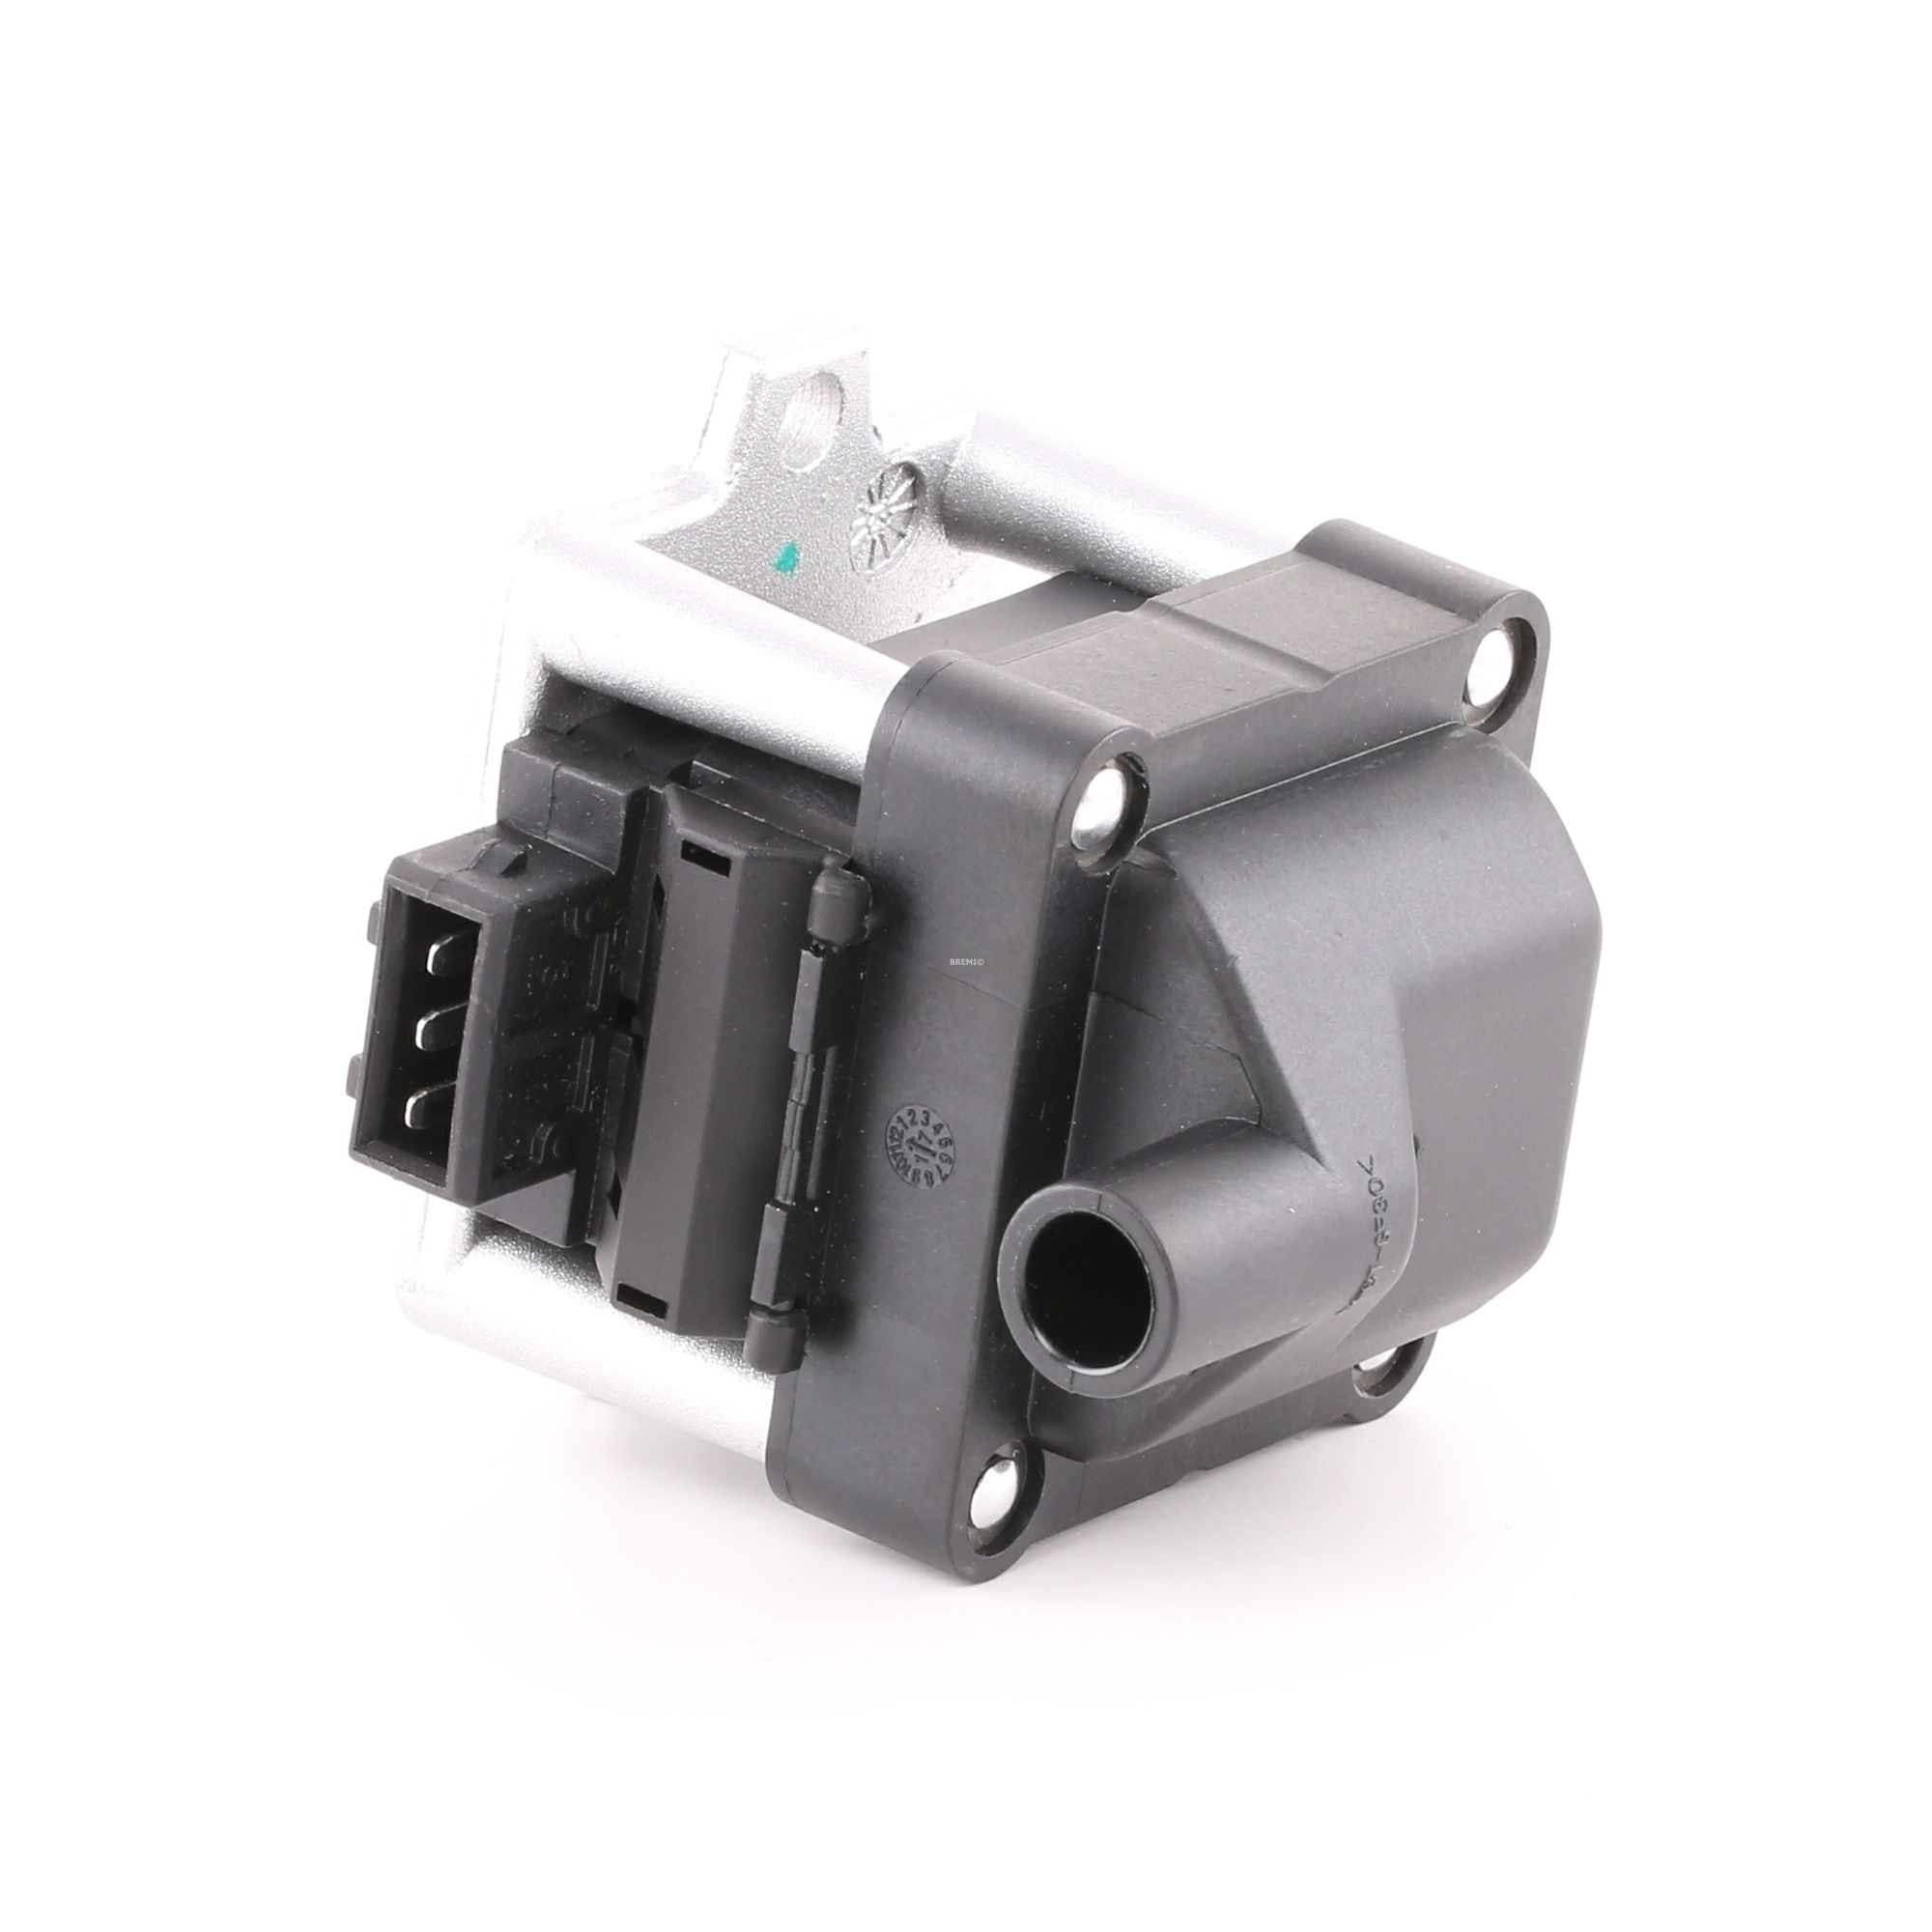 Ignition Coil BREMI 11893 rating